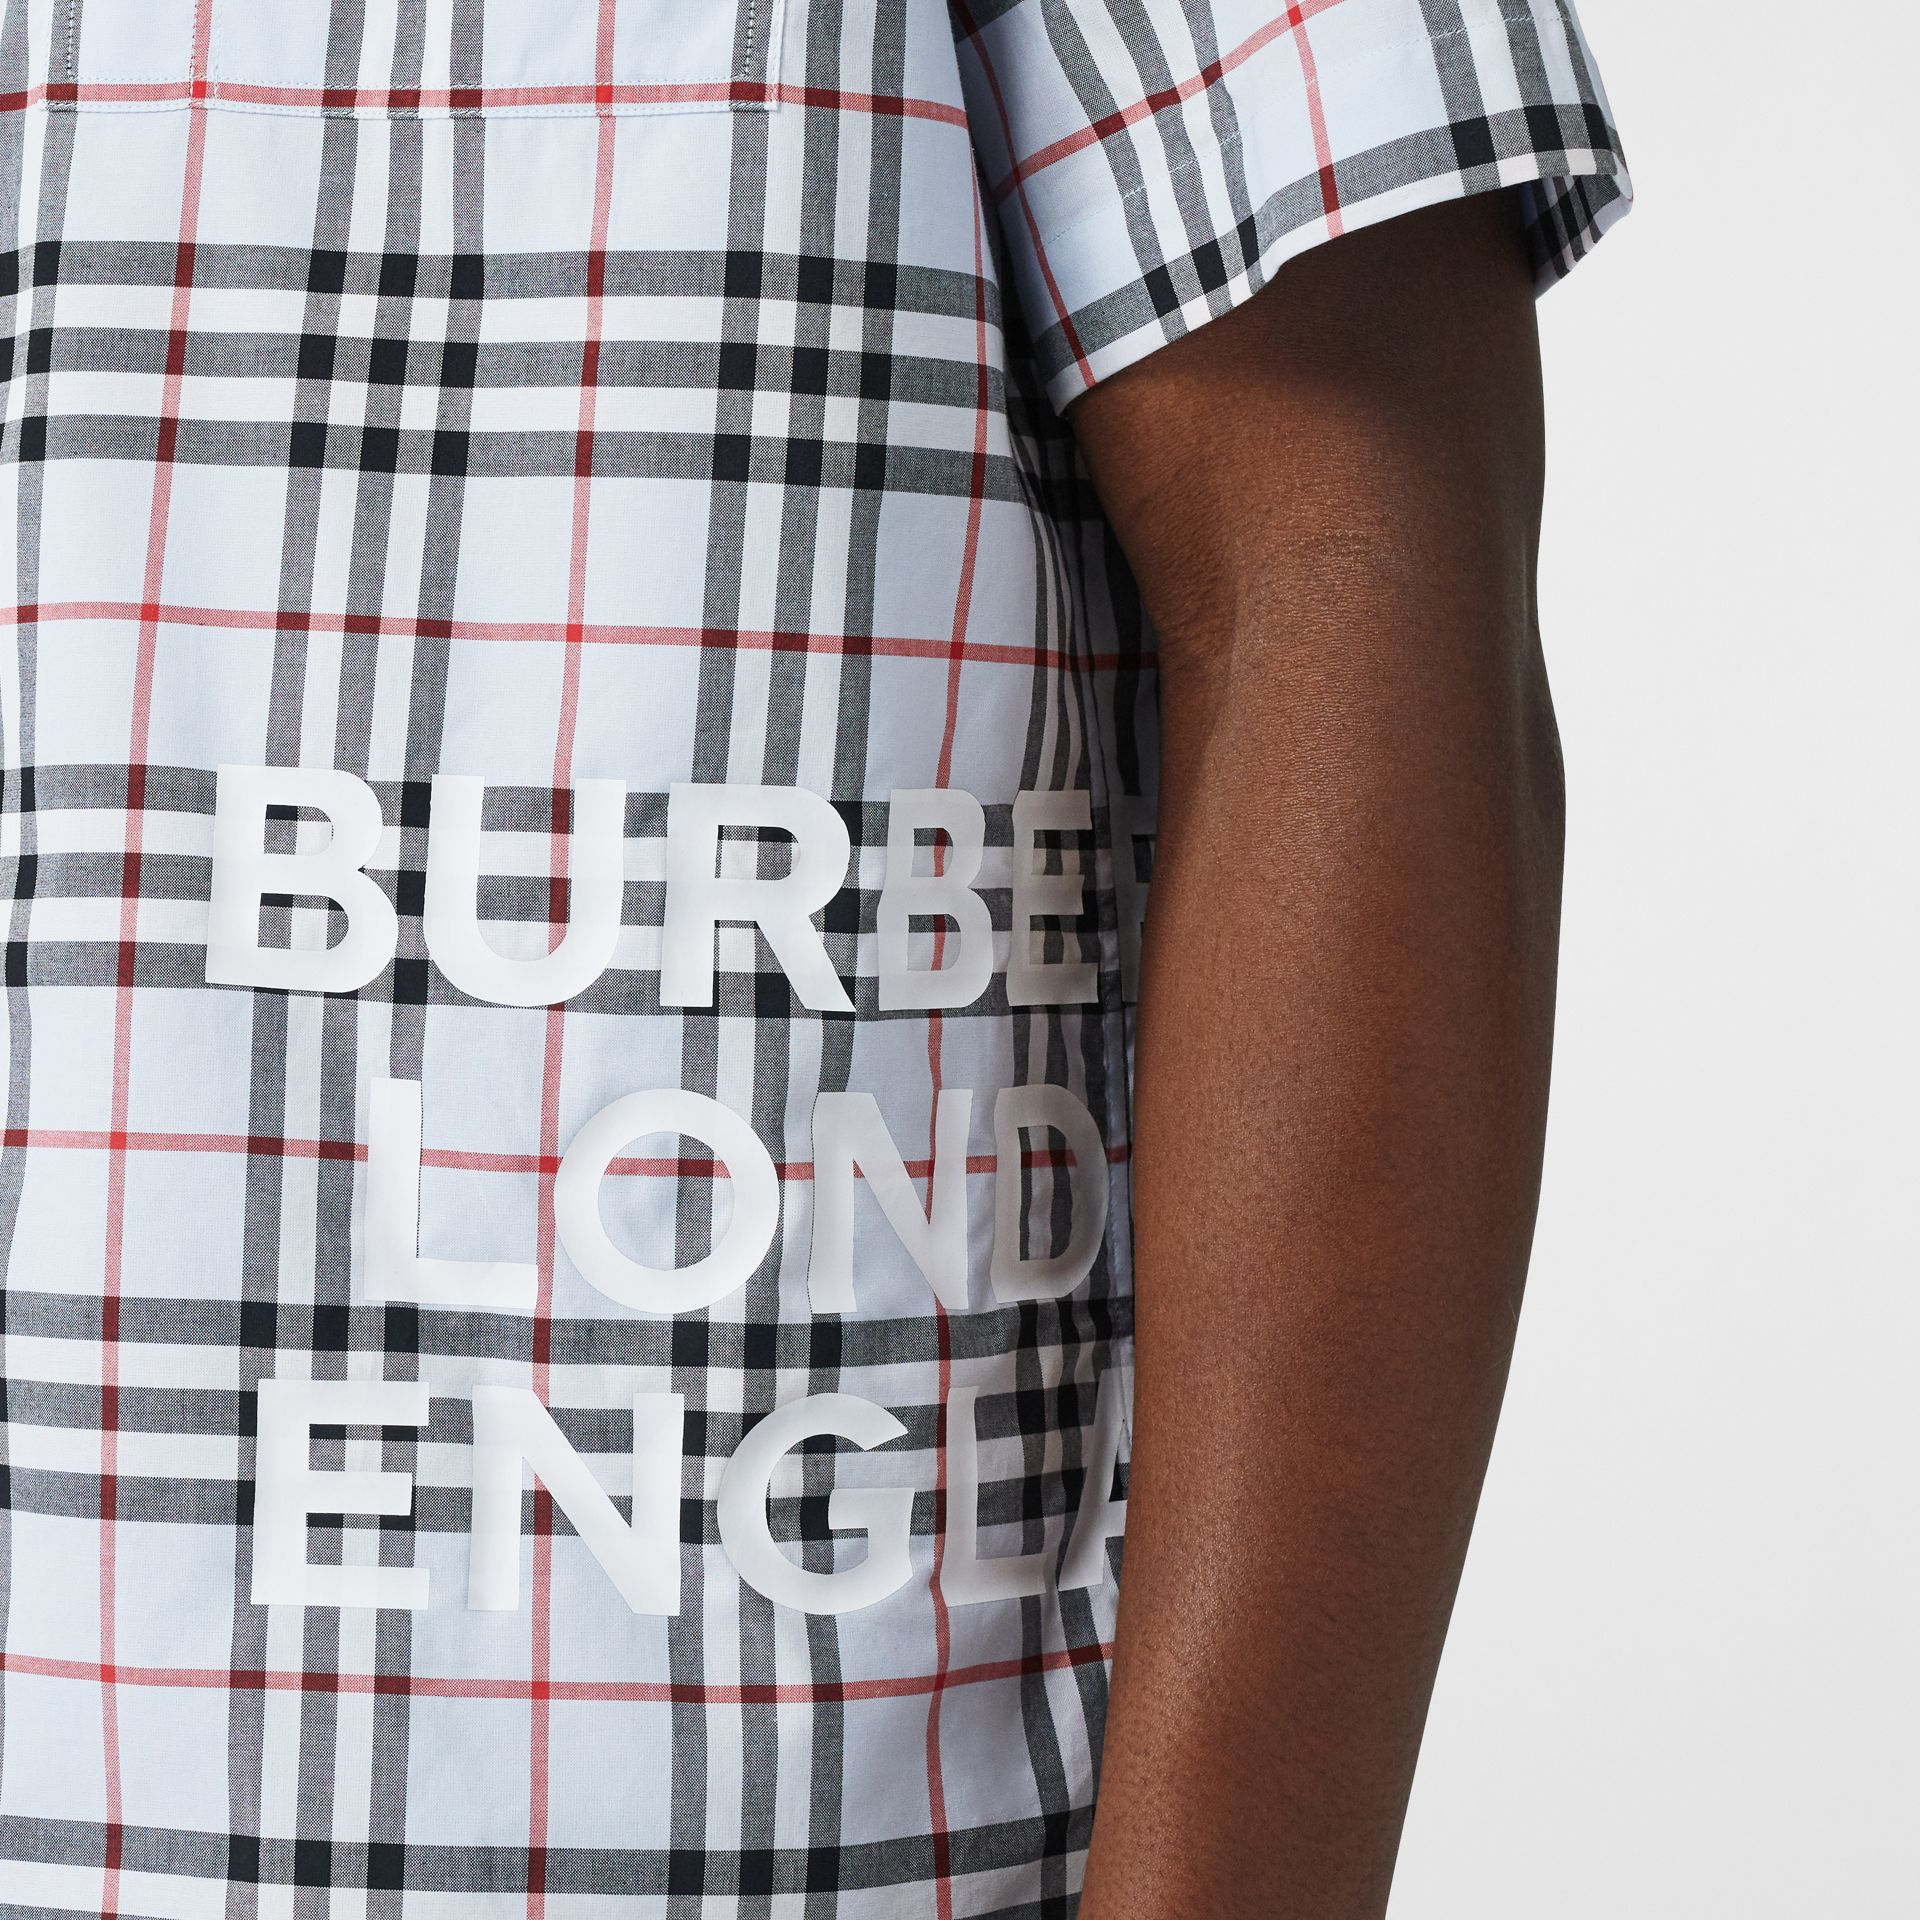 Short-sleeve Vintage Check Cotton Oversized Shirt in Pale Blue - Men | Burberry Hong Kong S.A.R - gallery image 5